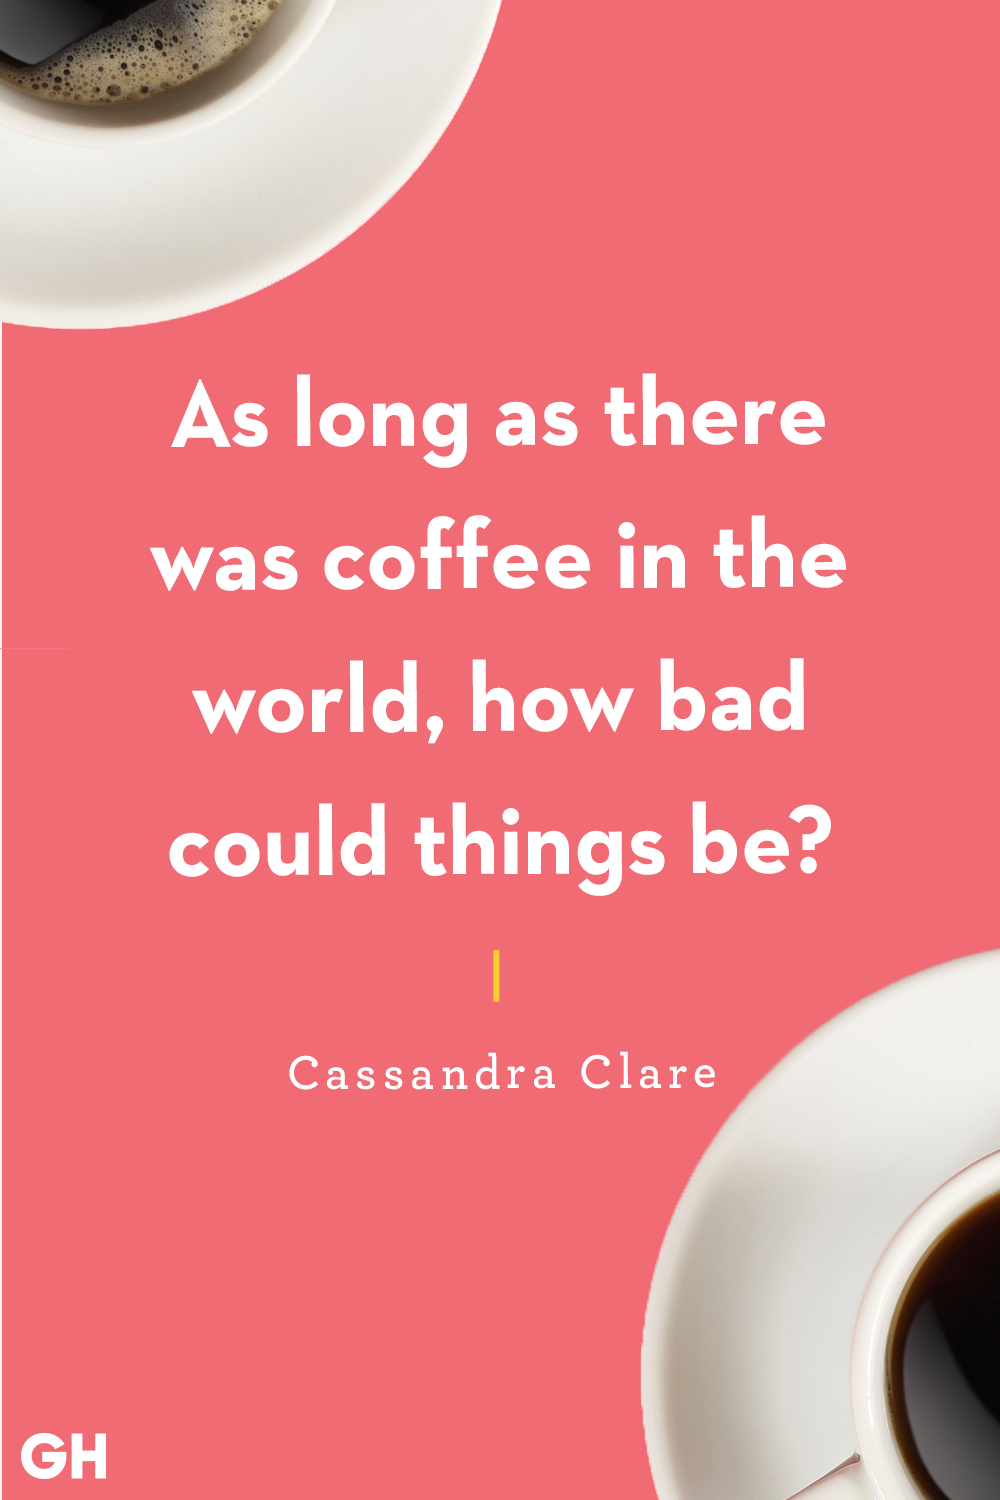 8 Funny Coffee Quotes - Best Coffee Quotes and Sayings